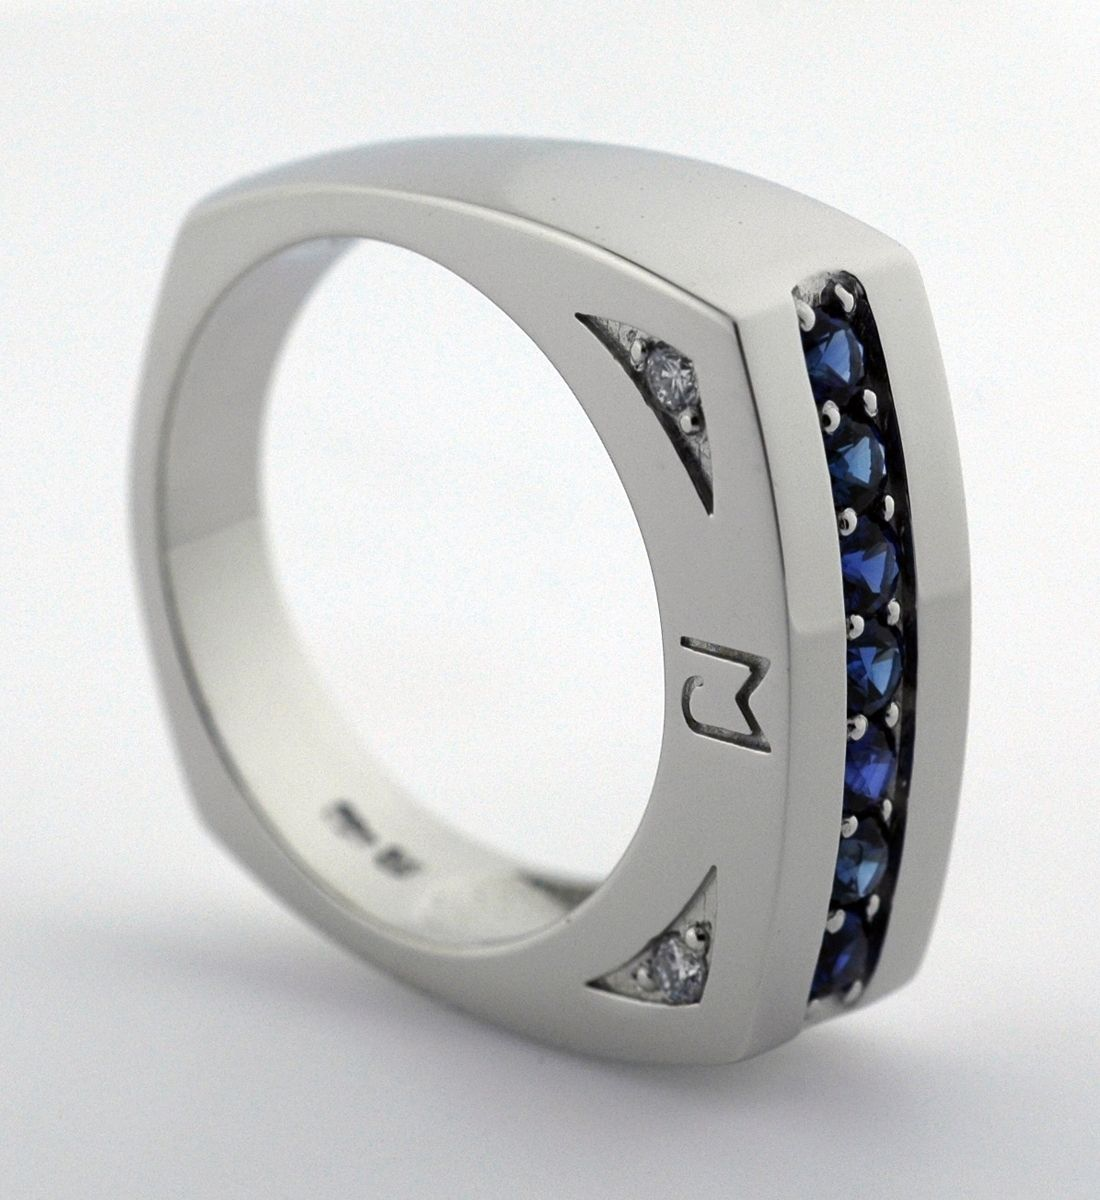 White Gold Or Platinum Sapphire Men's Ring With Initials